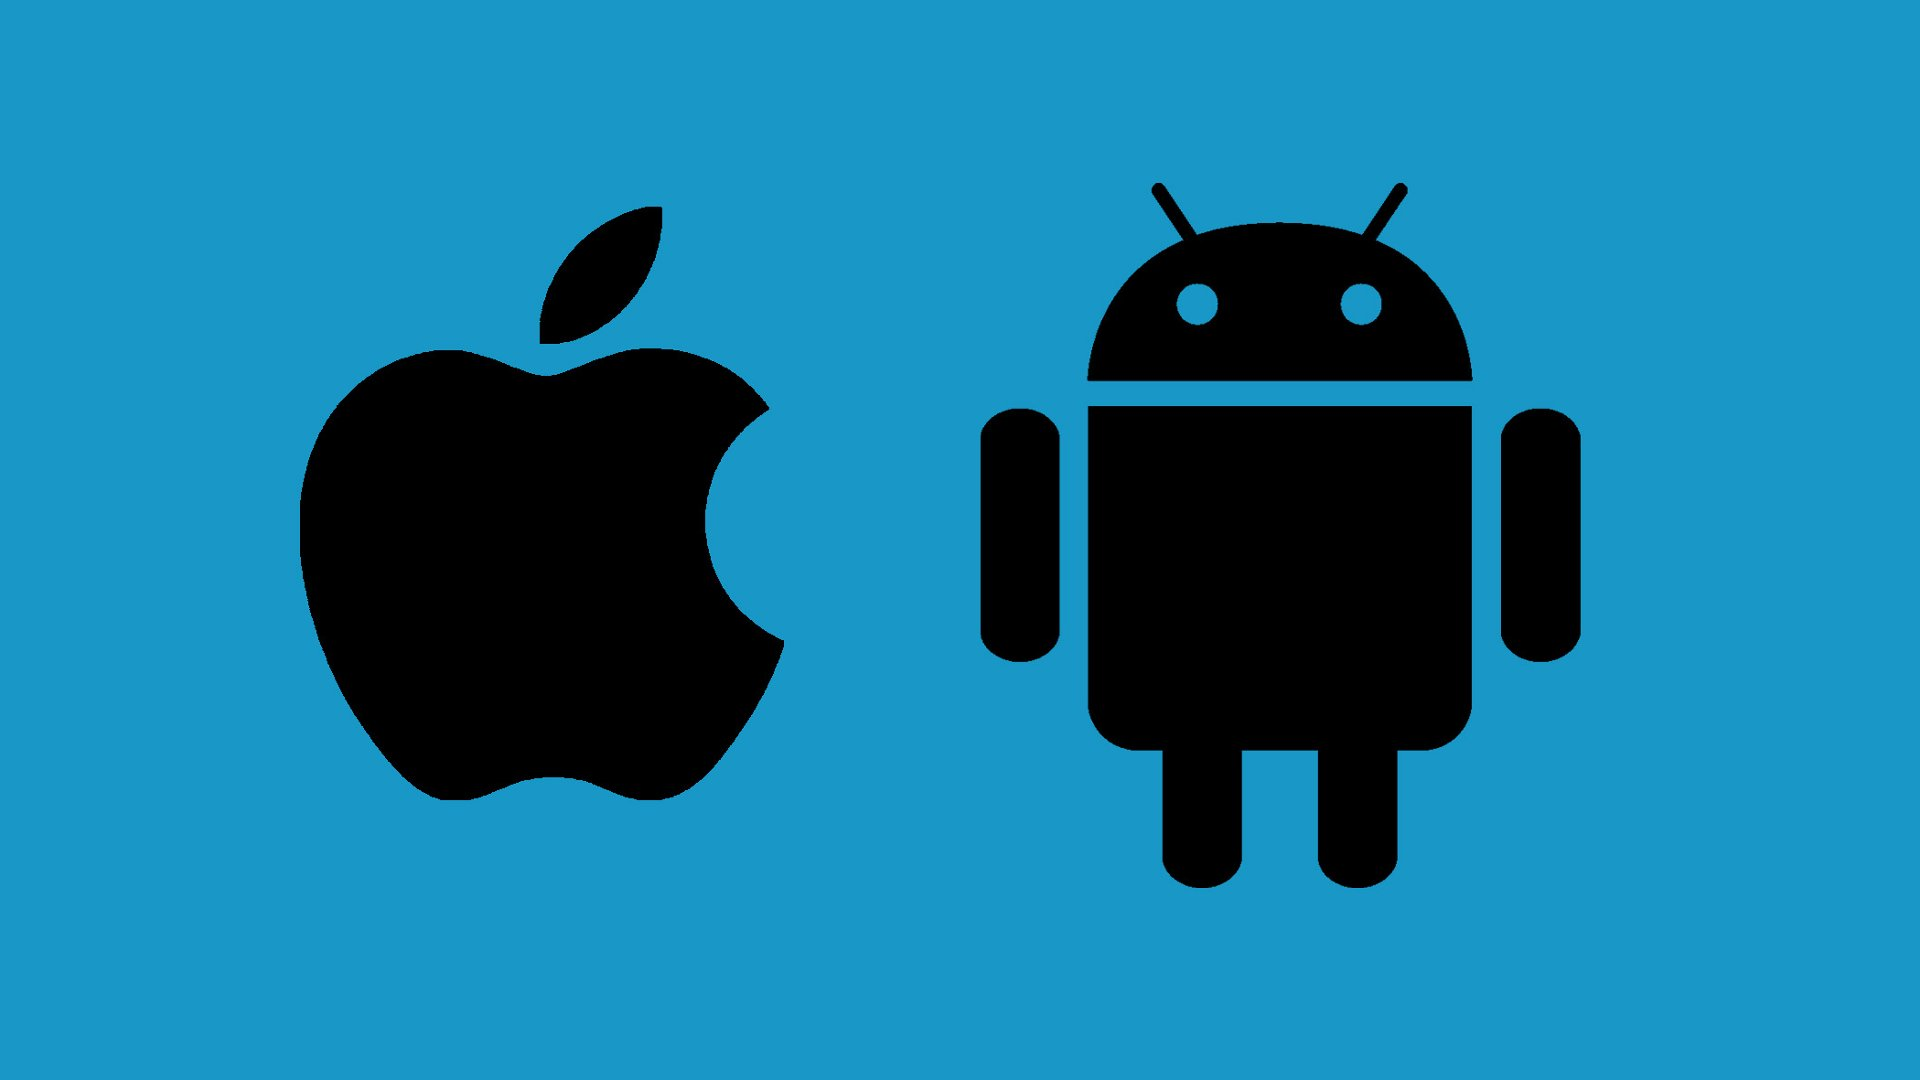 Apple iOS - Android